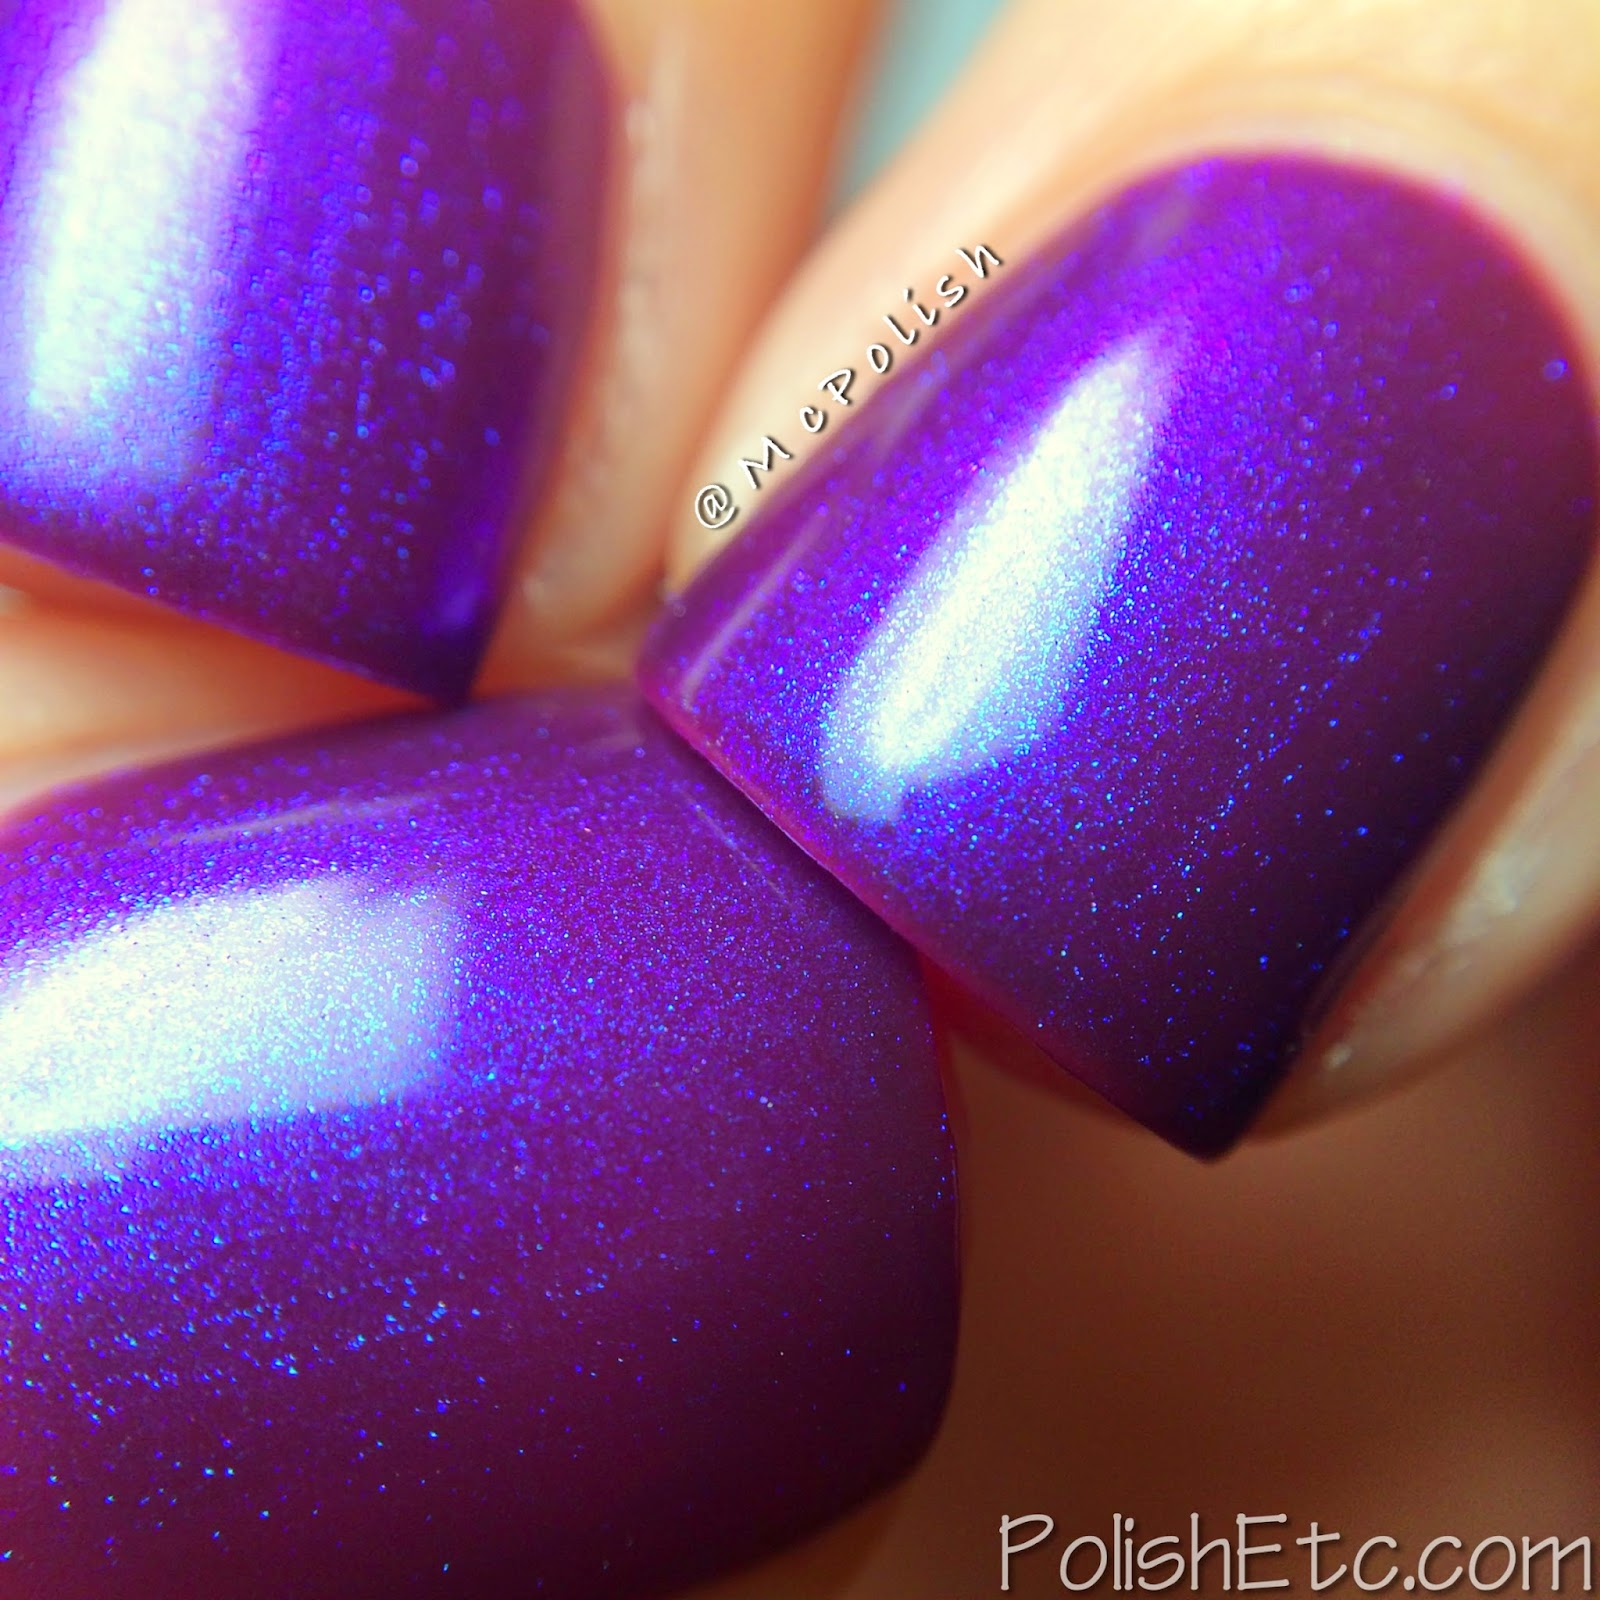 Polish Alcoholic - Magneto - Superheroes Collection - McPolish - MACRO